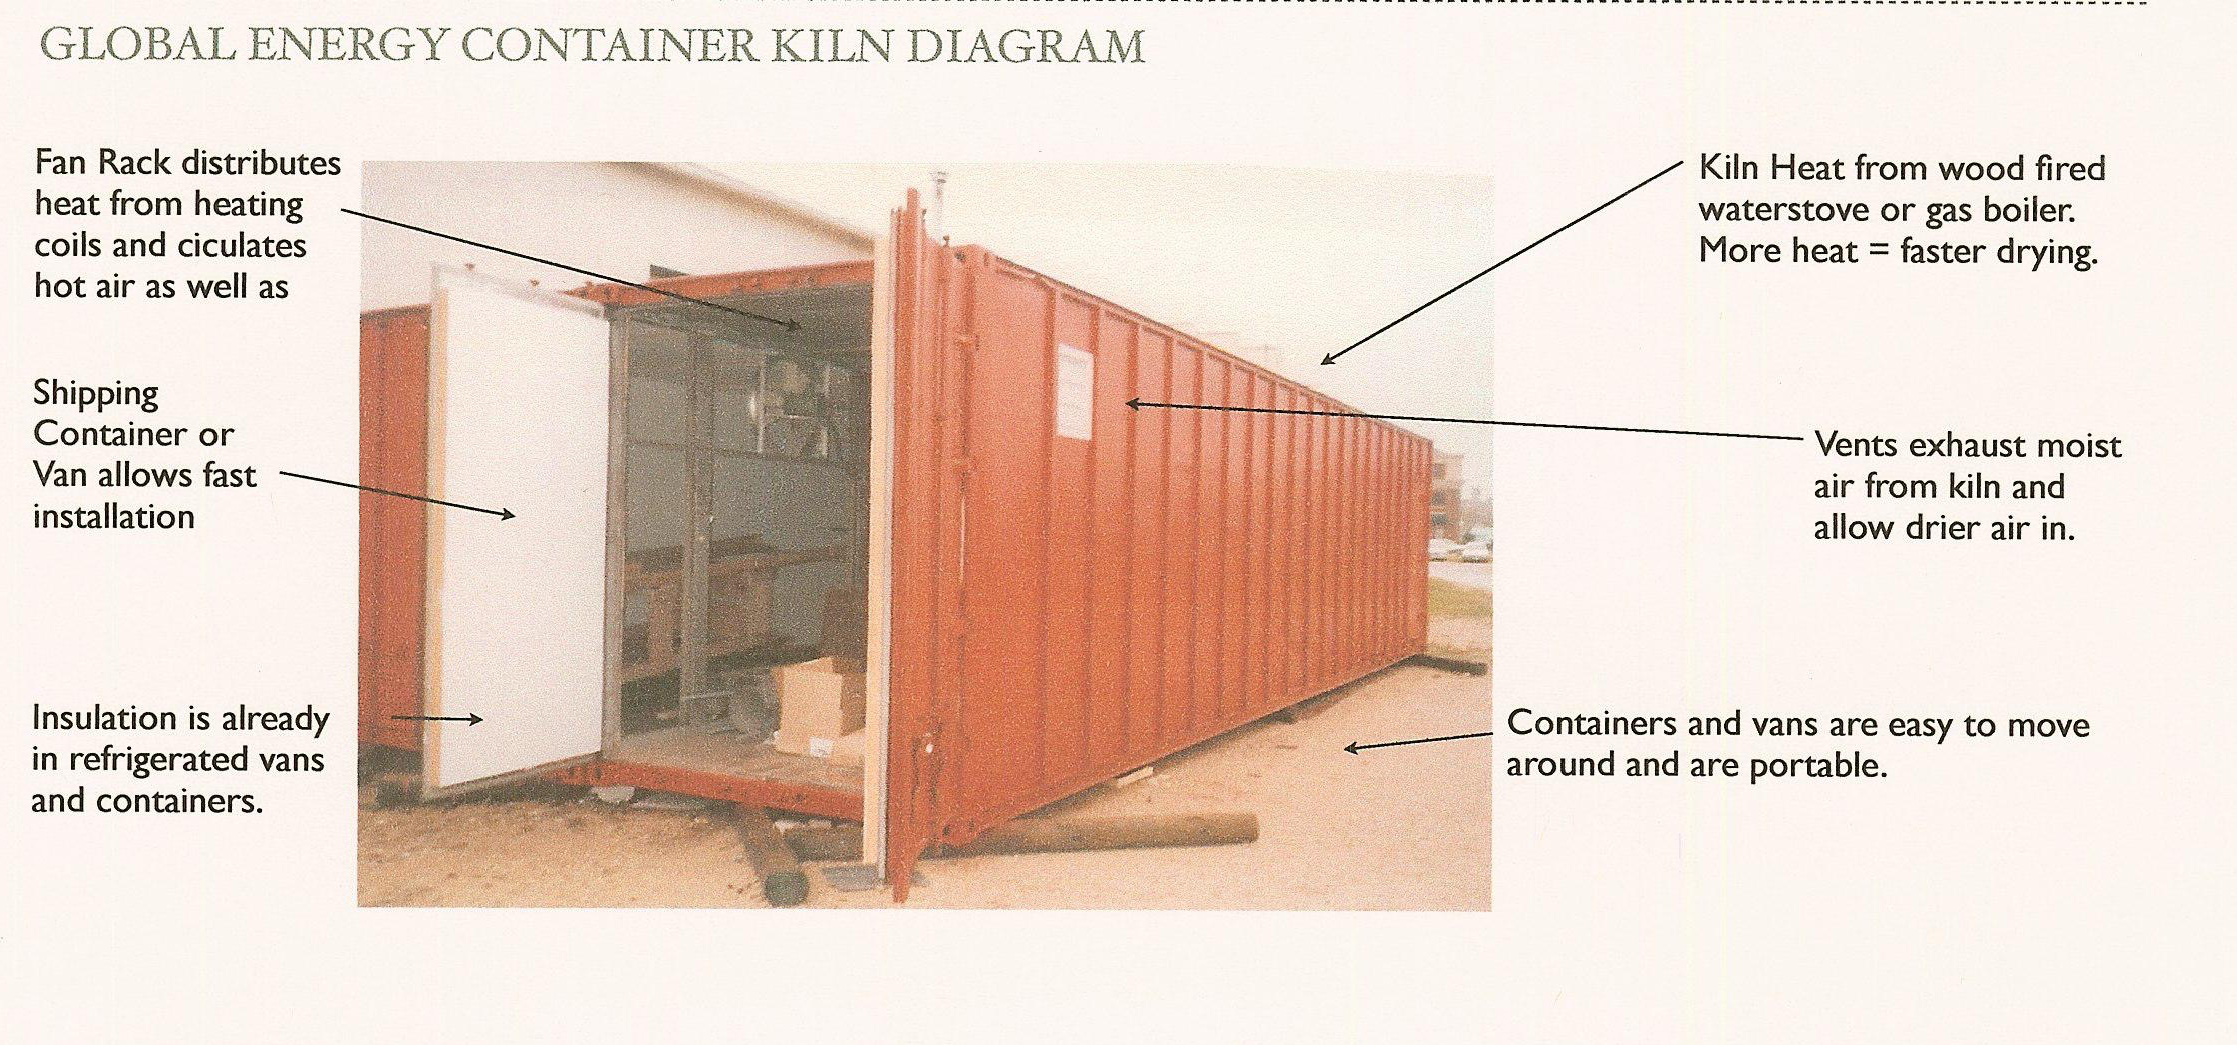 Global Energy container kiln diagram